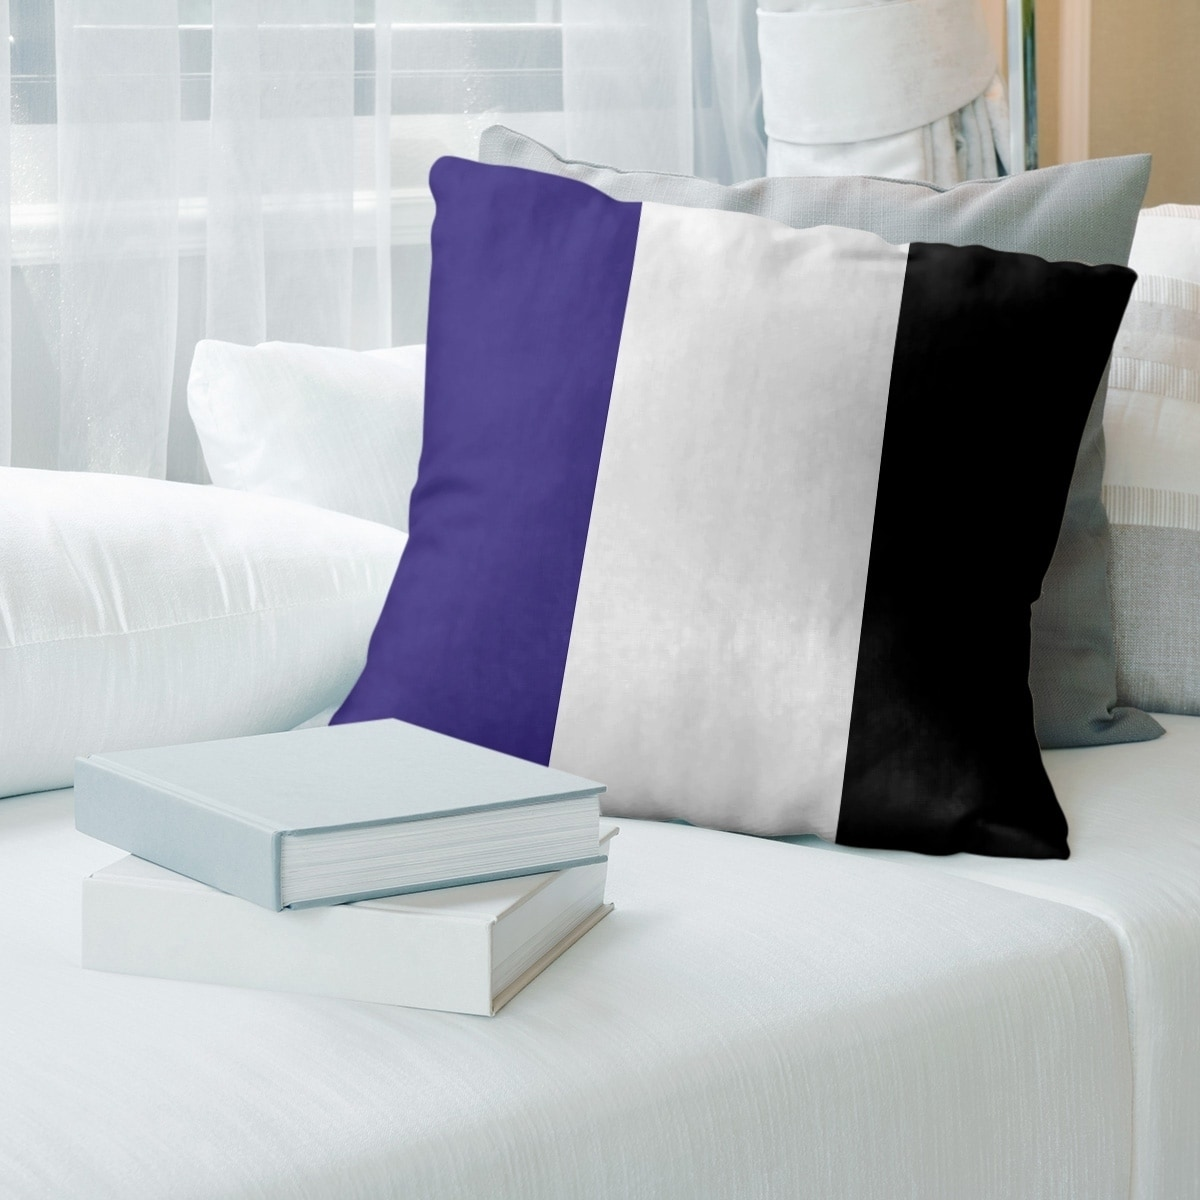 shop baltimore baltimore football stripes floor pillow standard overstock 30282828 overstock com